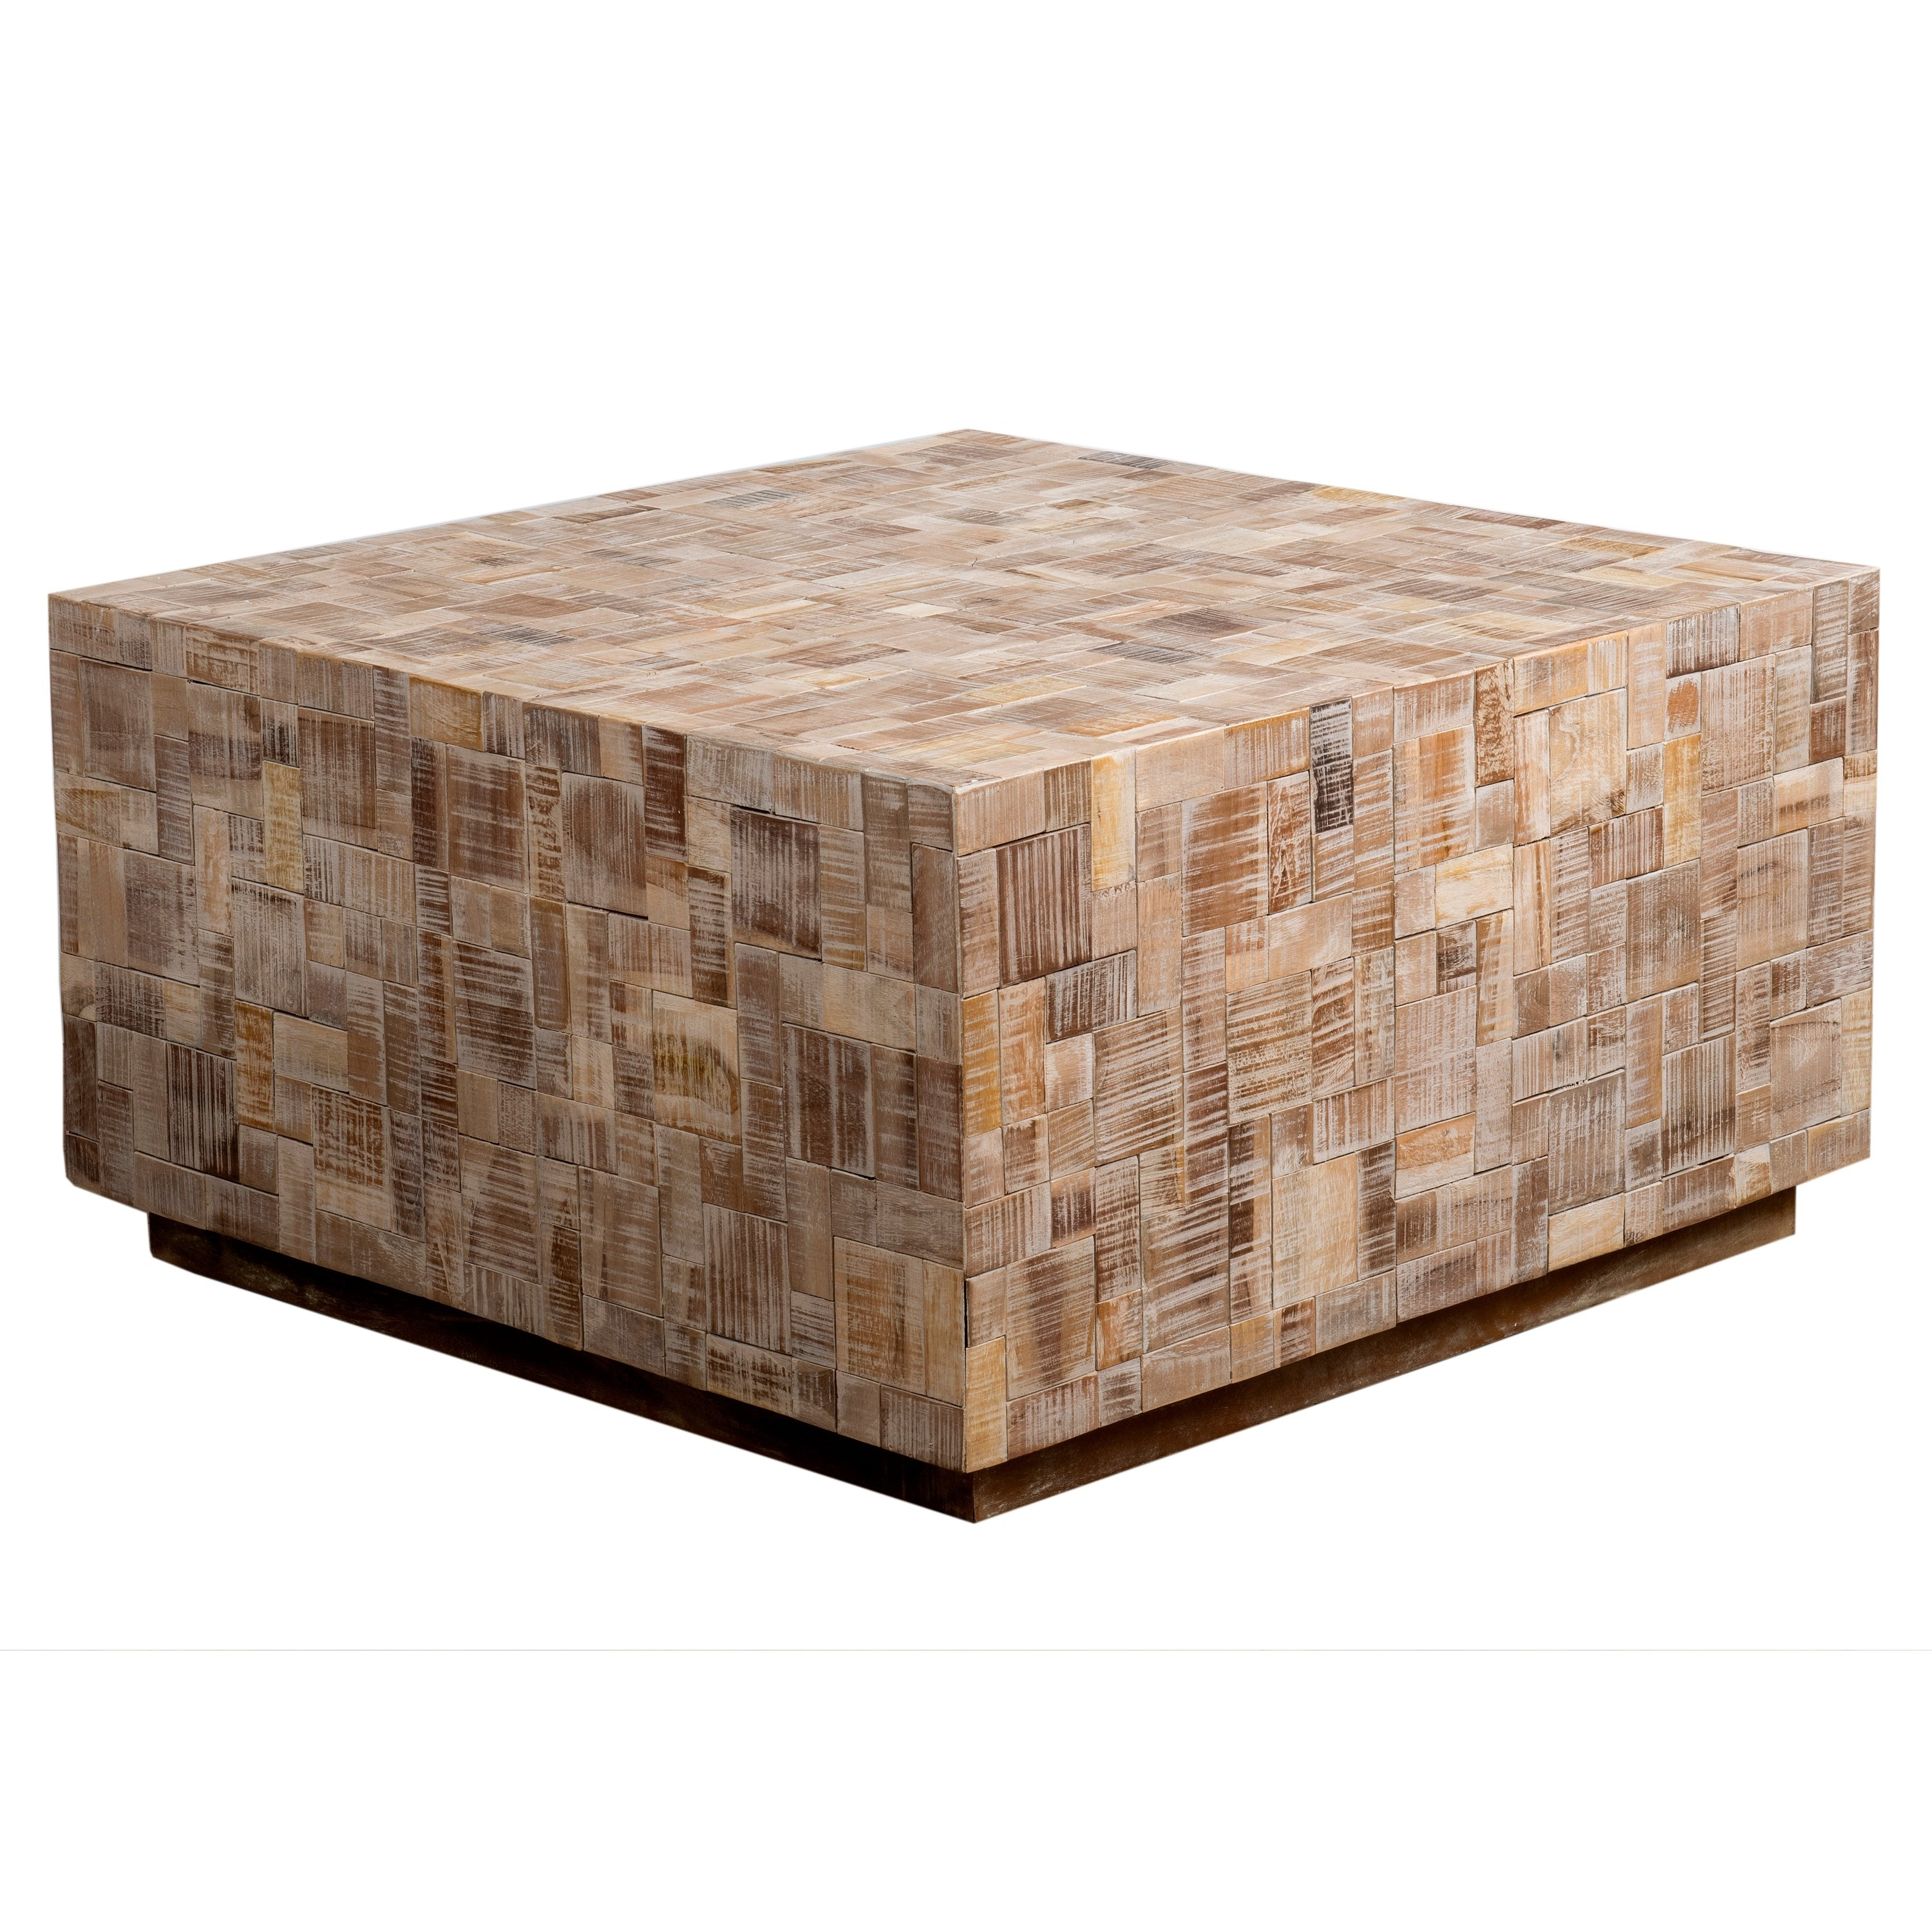 Amory Tan Square Coffee Table Free Shipping Today 10132173